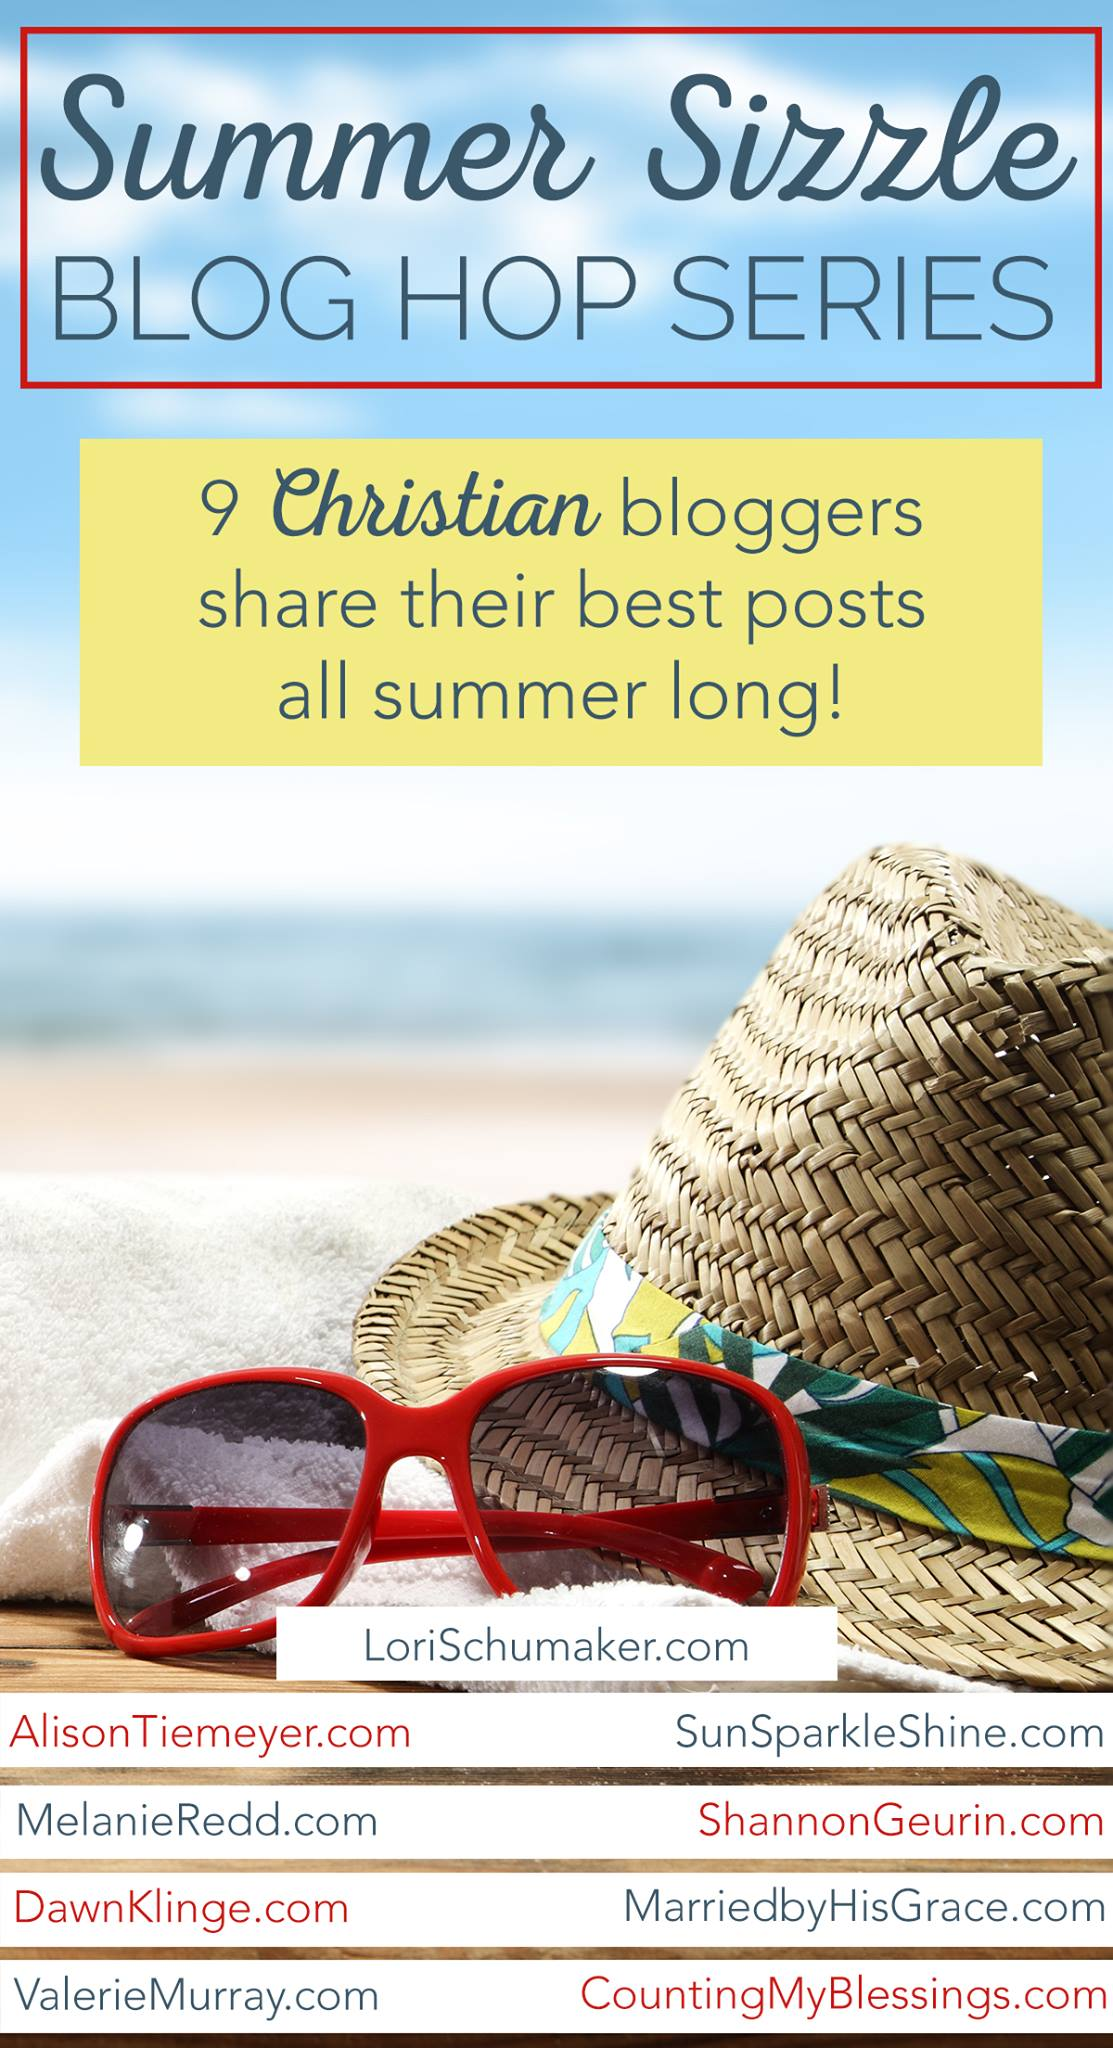 All the hottest posts from 9 Christian bloggers - SunSparkleShine